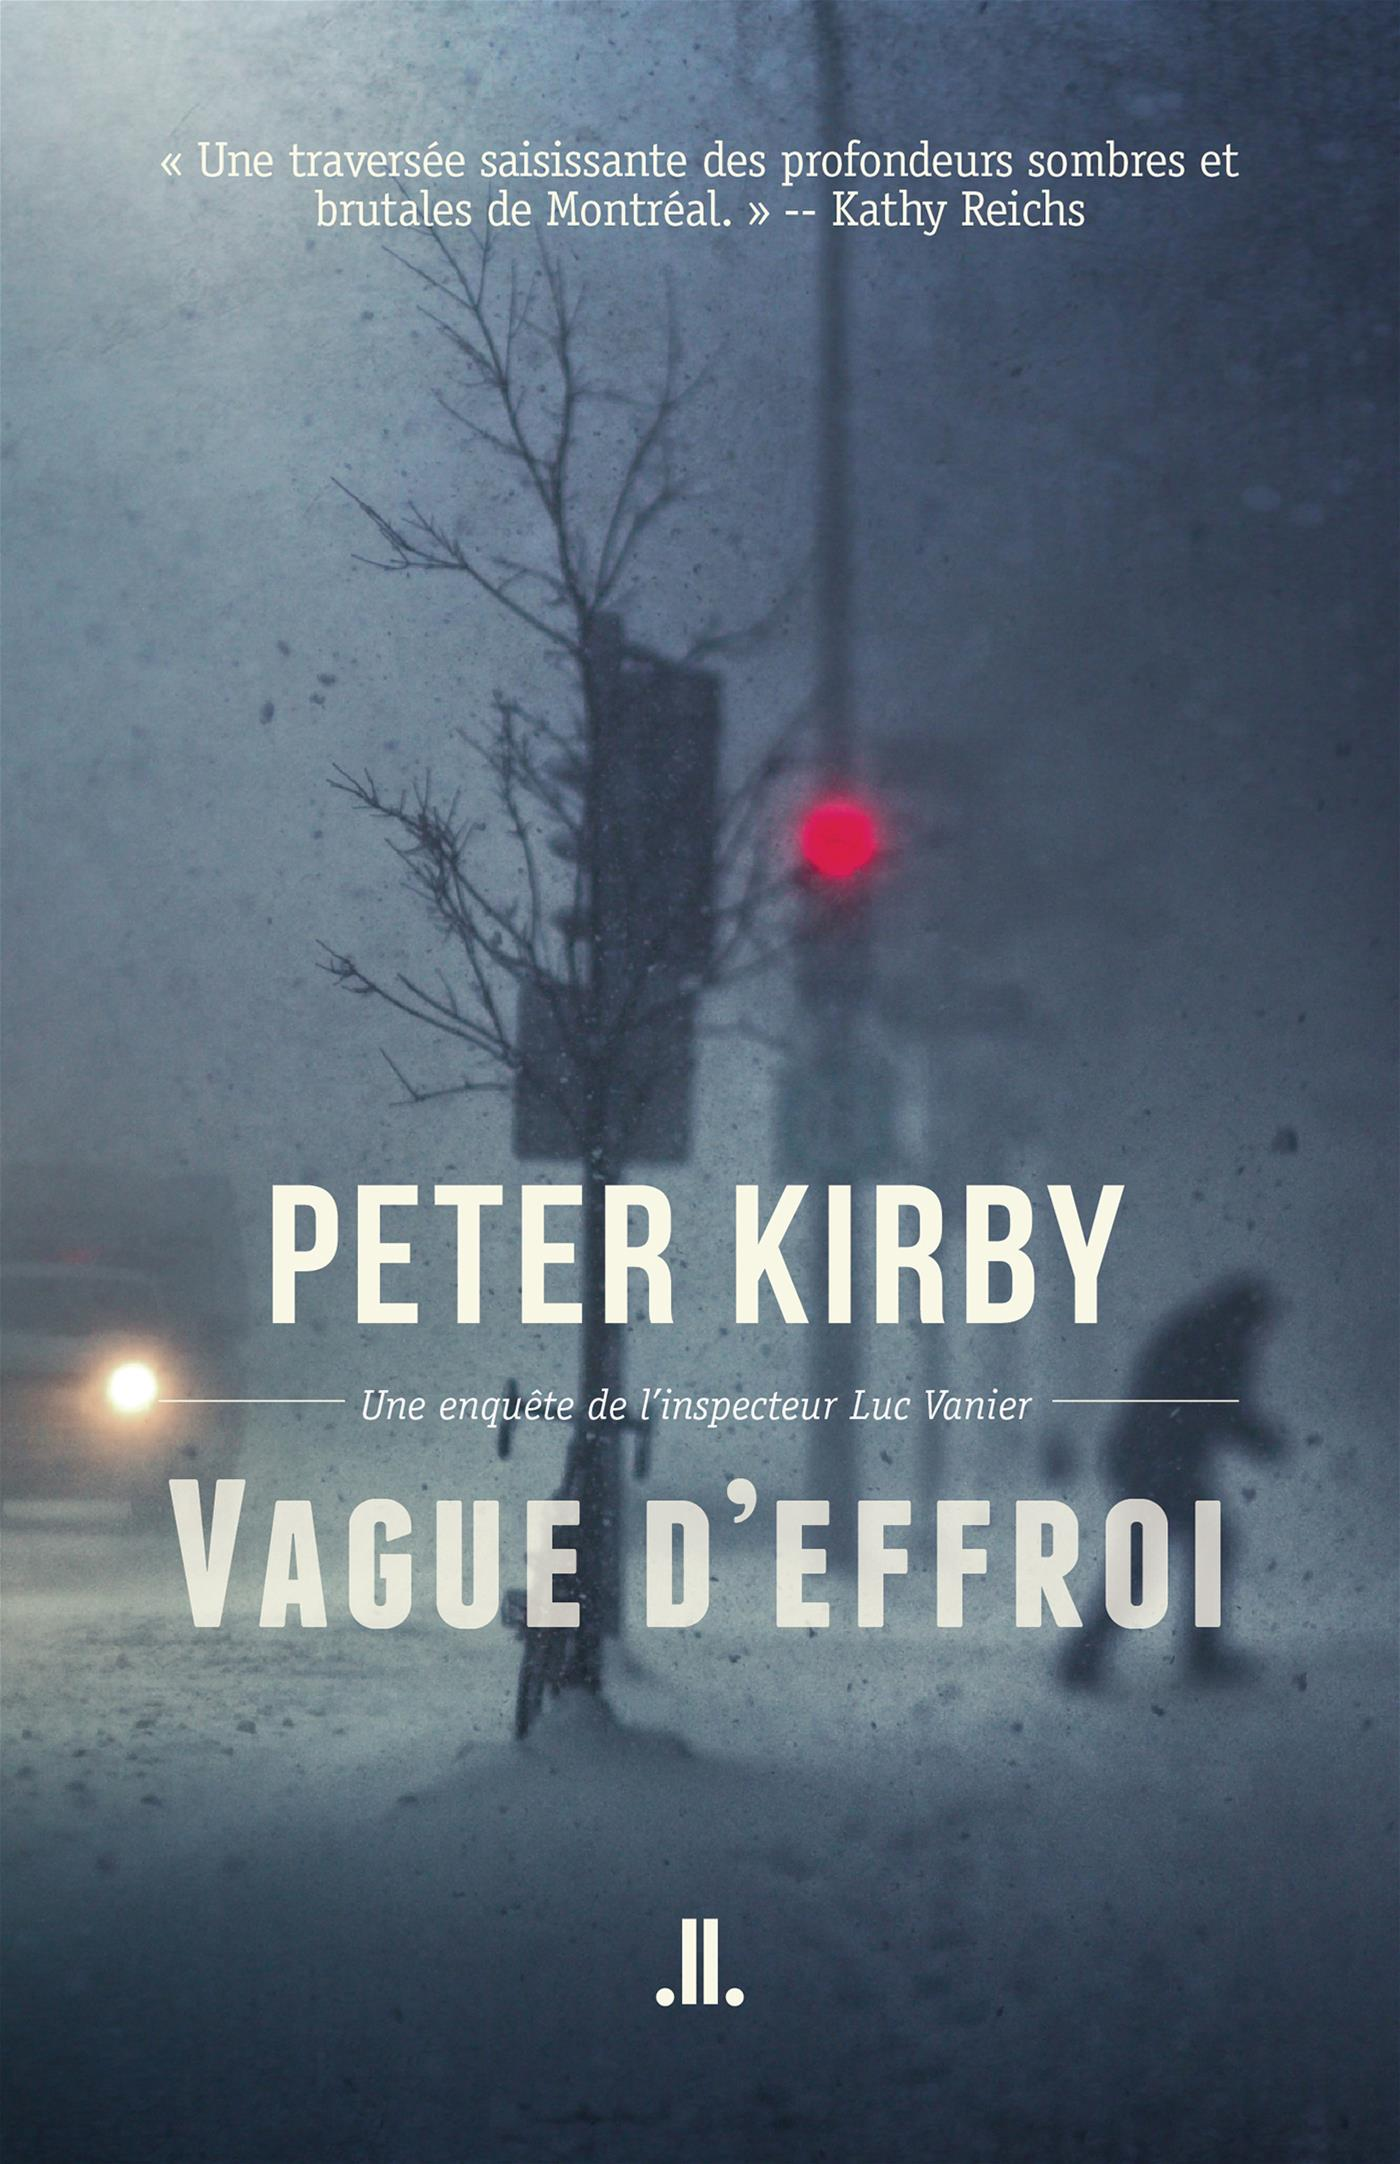 Peter Kirby - Vague d'effroi